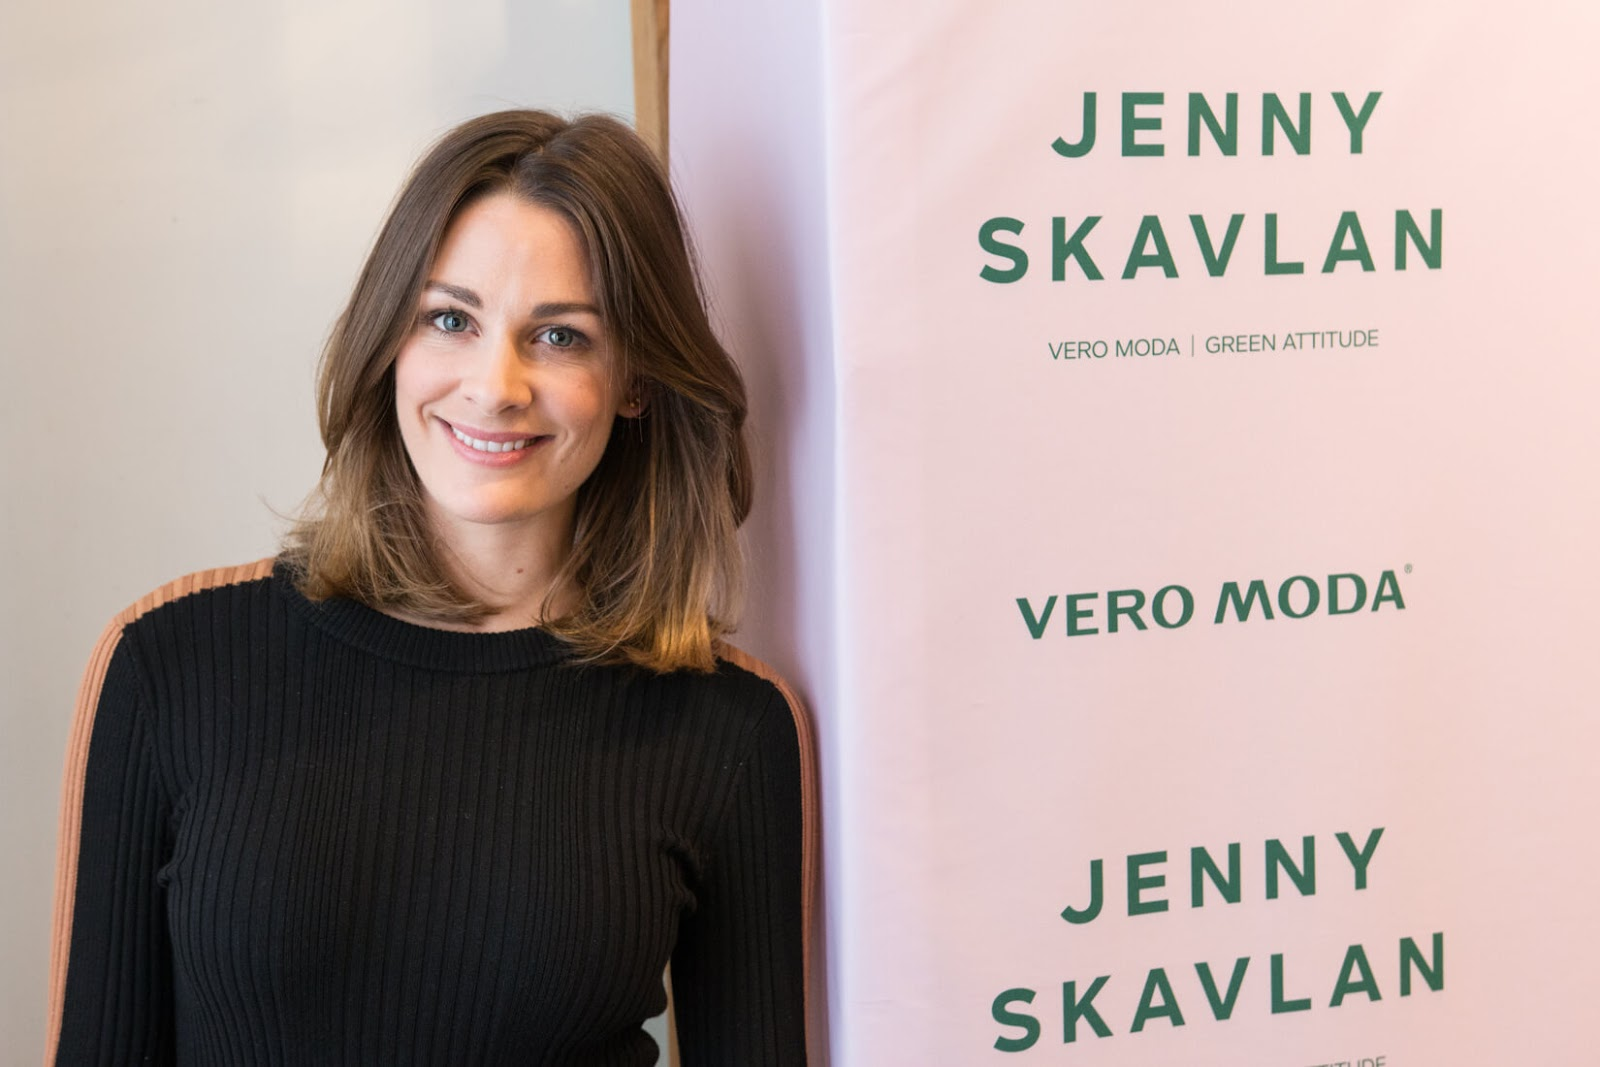 b10aca54 FASHION IN OSLO: Go green with Jenny Skavlan for Vero Moda